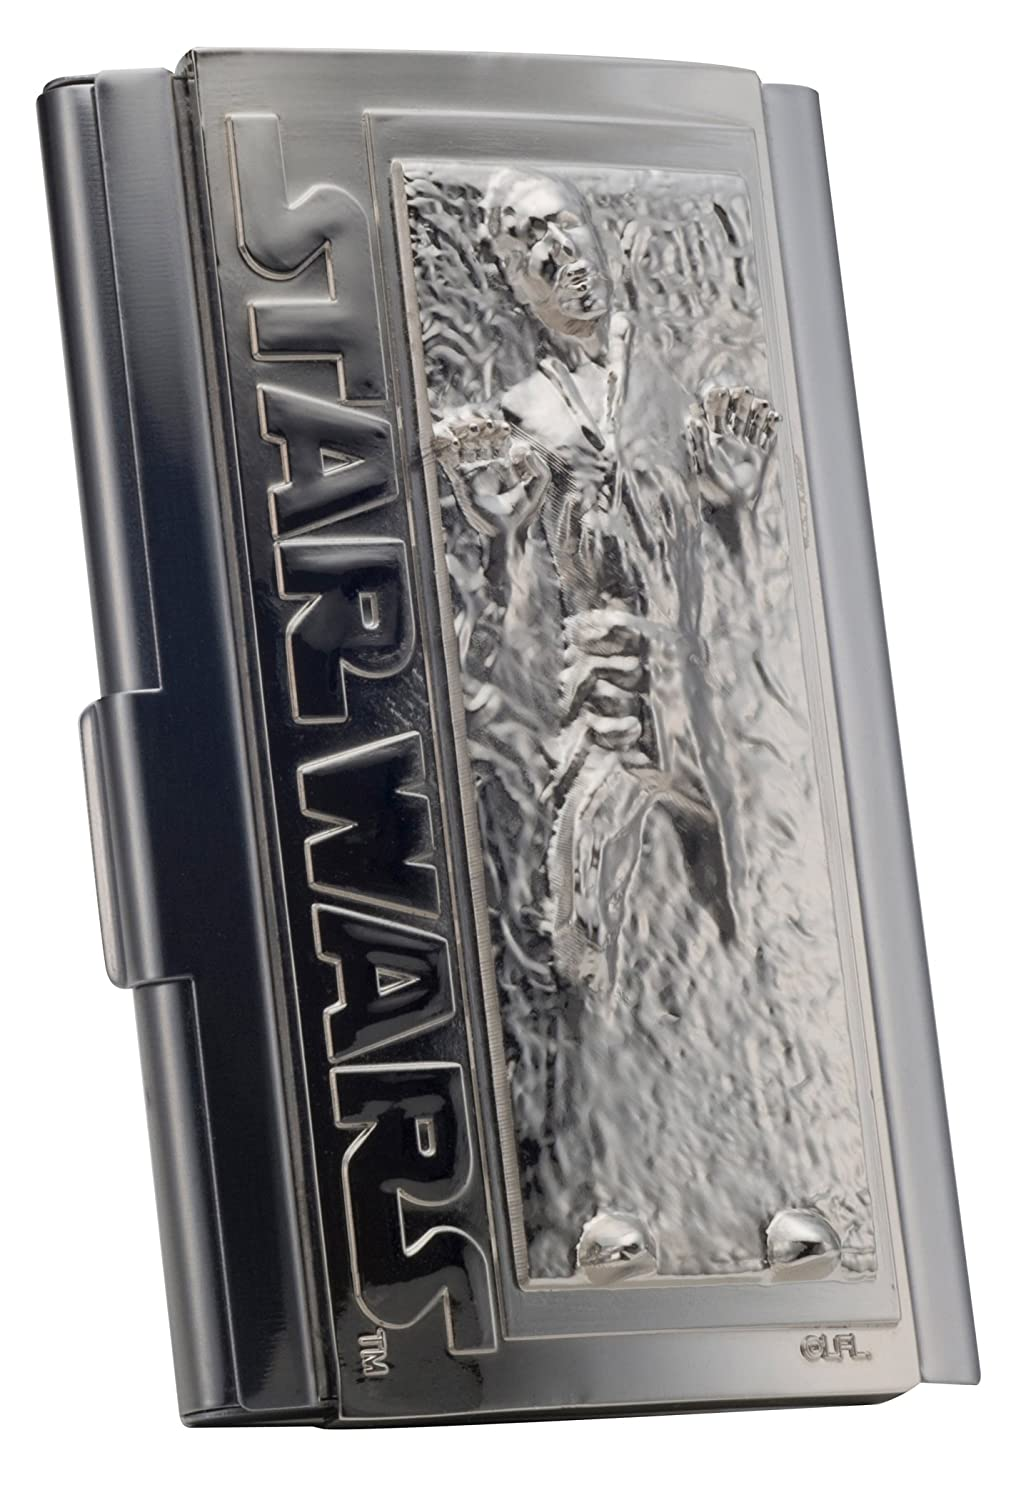 Amazon.com: Kotobukiya Star Wars Han Solo in Carbonite Business Card ...